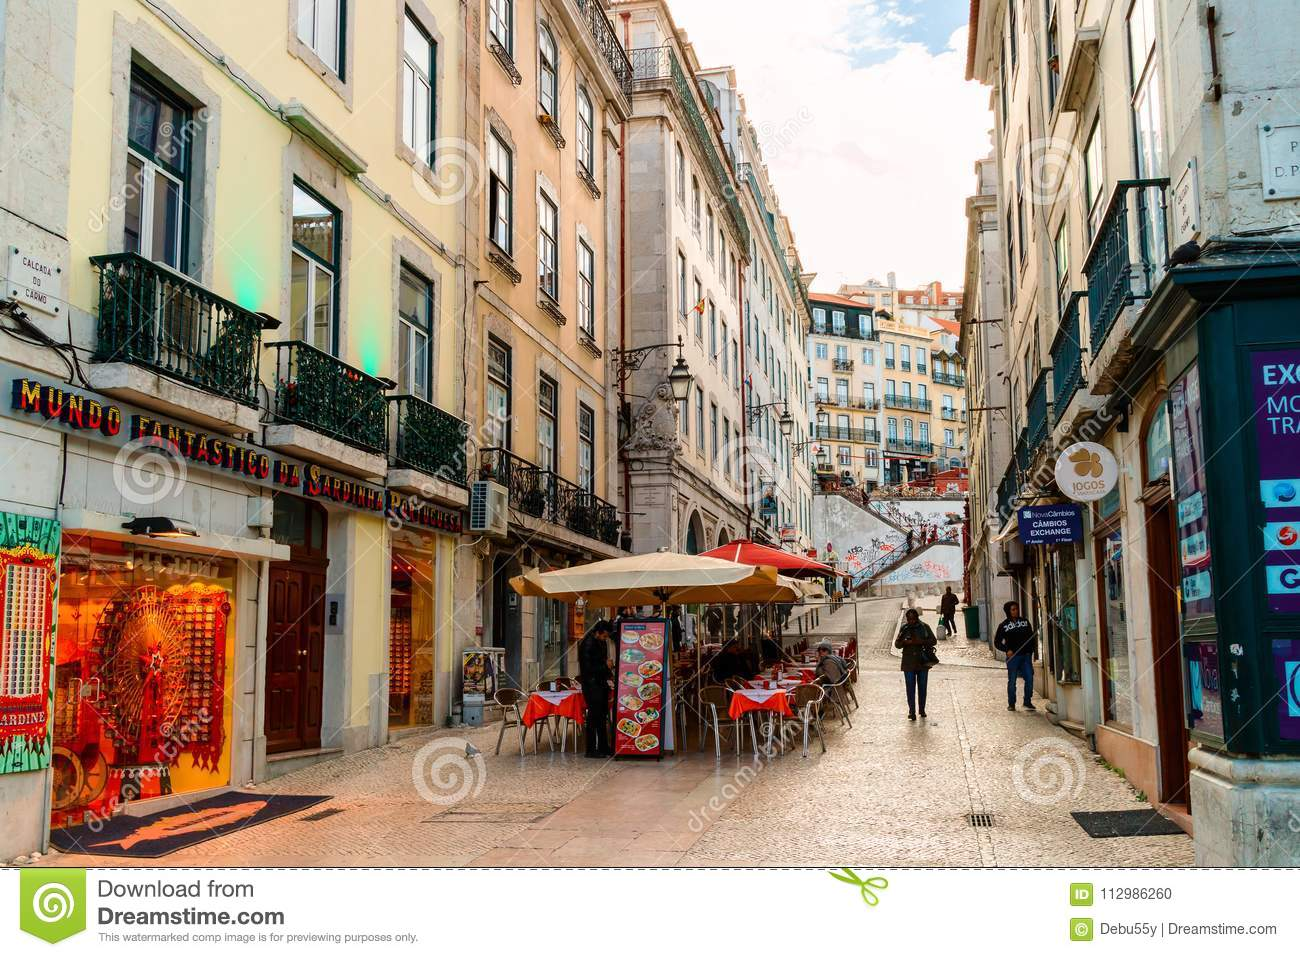 Shops and restaurants in old city centre of Lisbon.